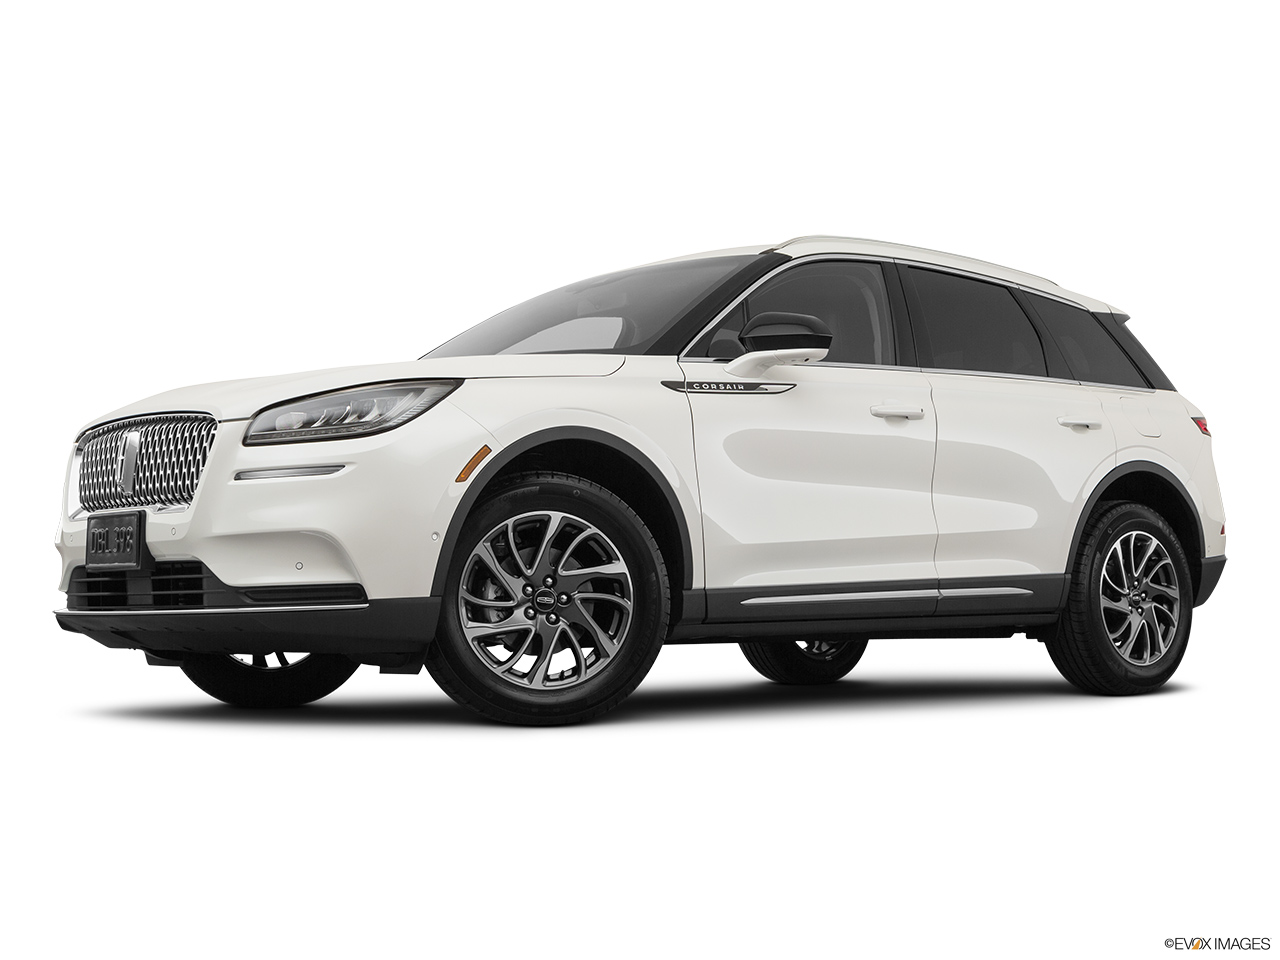 2020 Lincoln Corsair Standard Low/wide front 5/8.